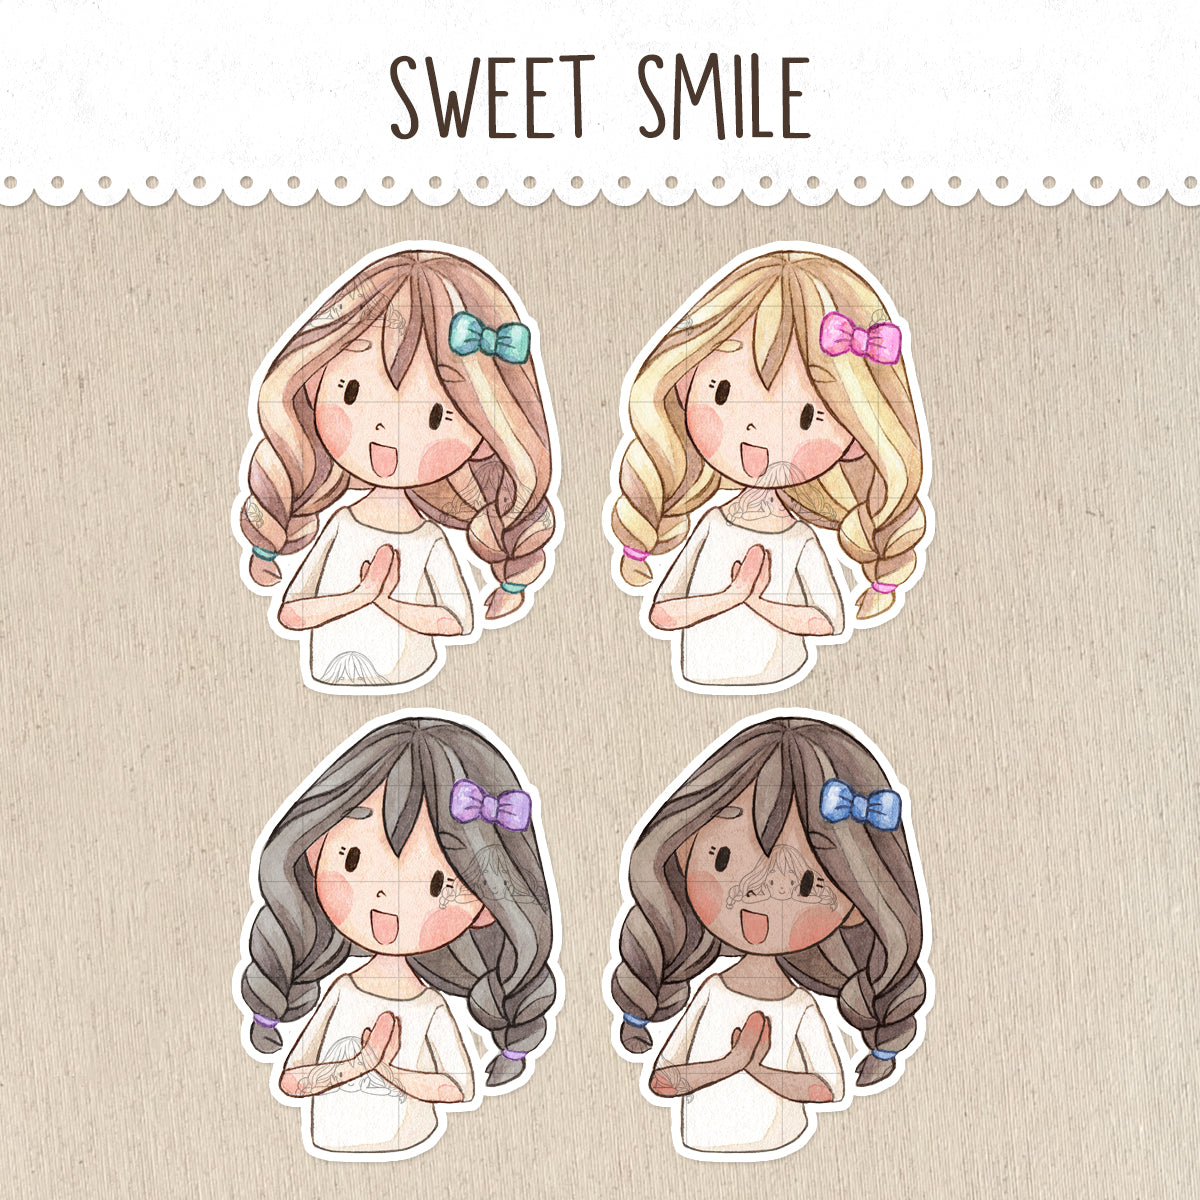 Sweet Smile Decorative Stickers ~Kawaii Girl: Vera, Valerie and Violet~